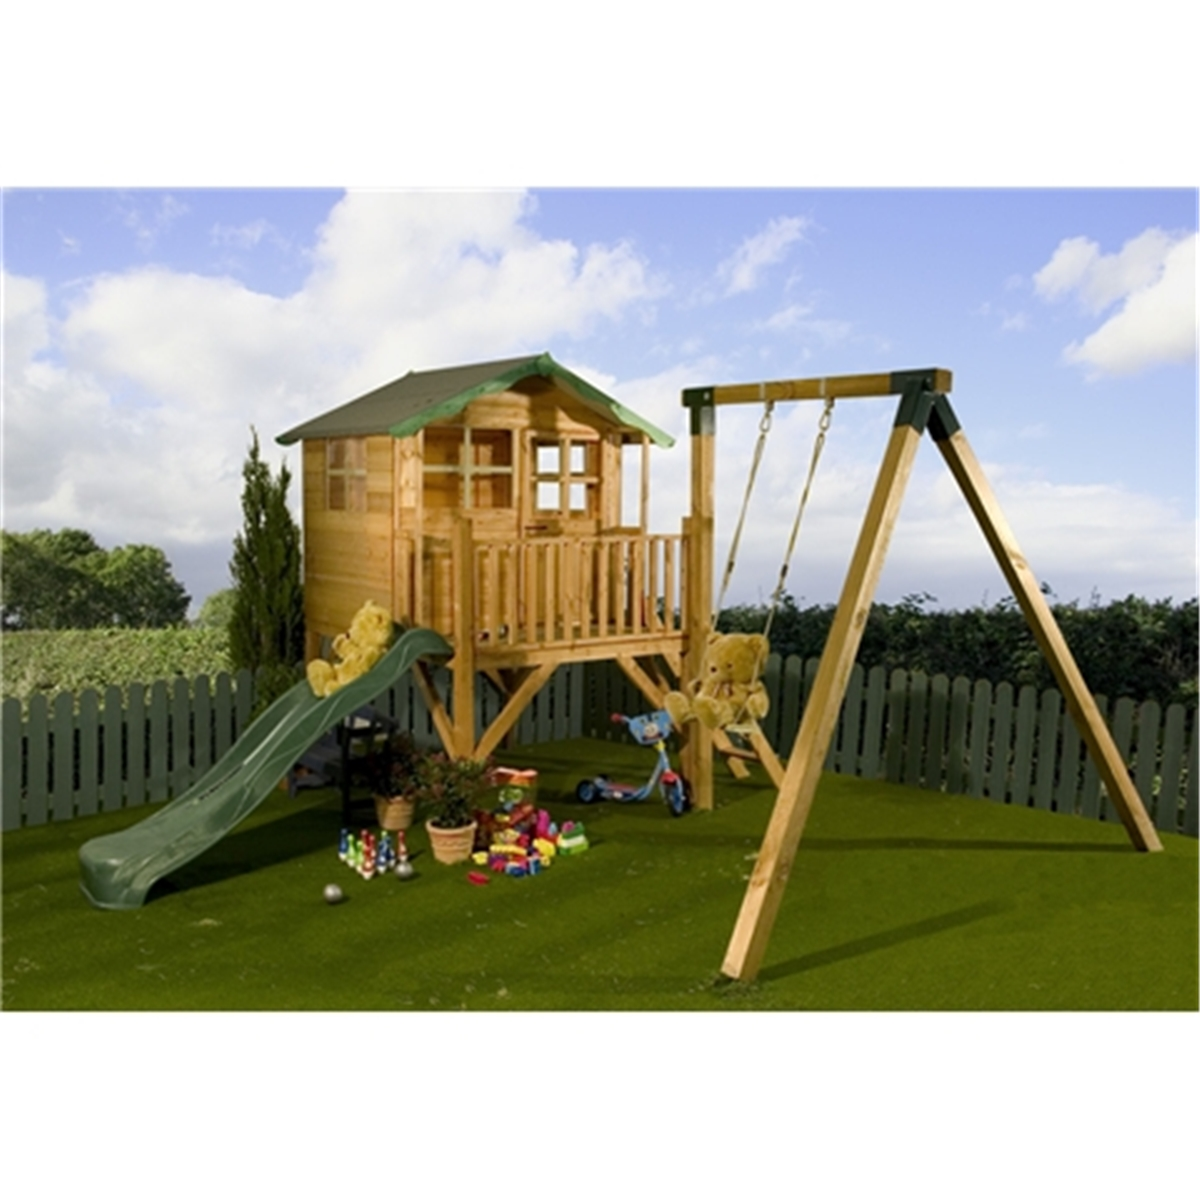 5 x 7 wooden tower playhouse with slide and swing for Childrens playhouse with slide and swing